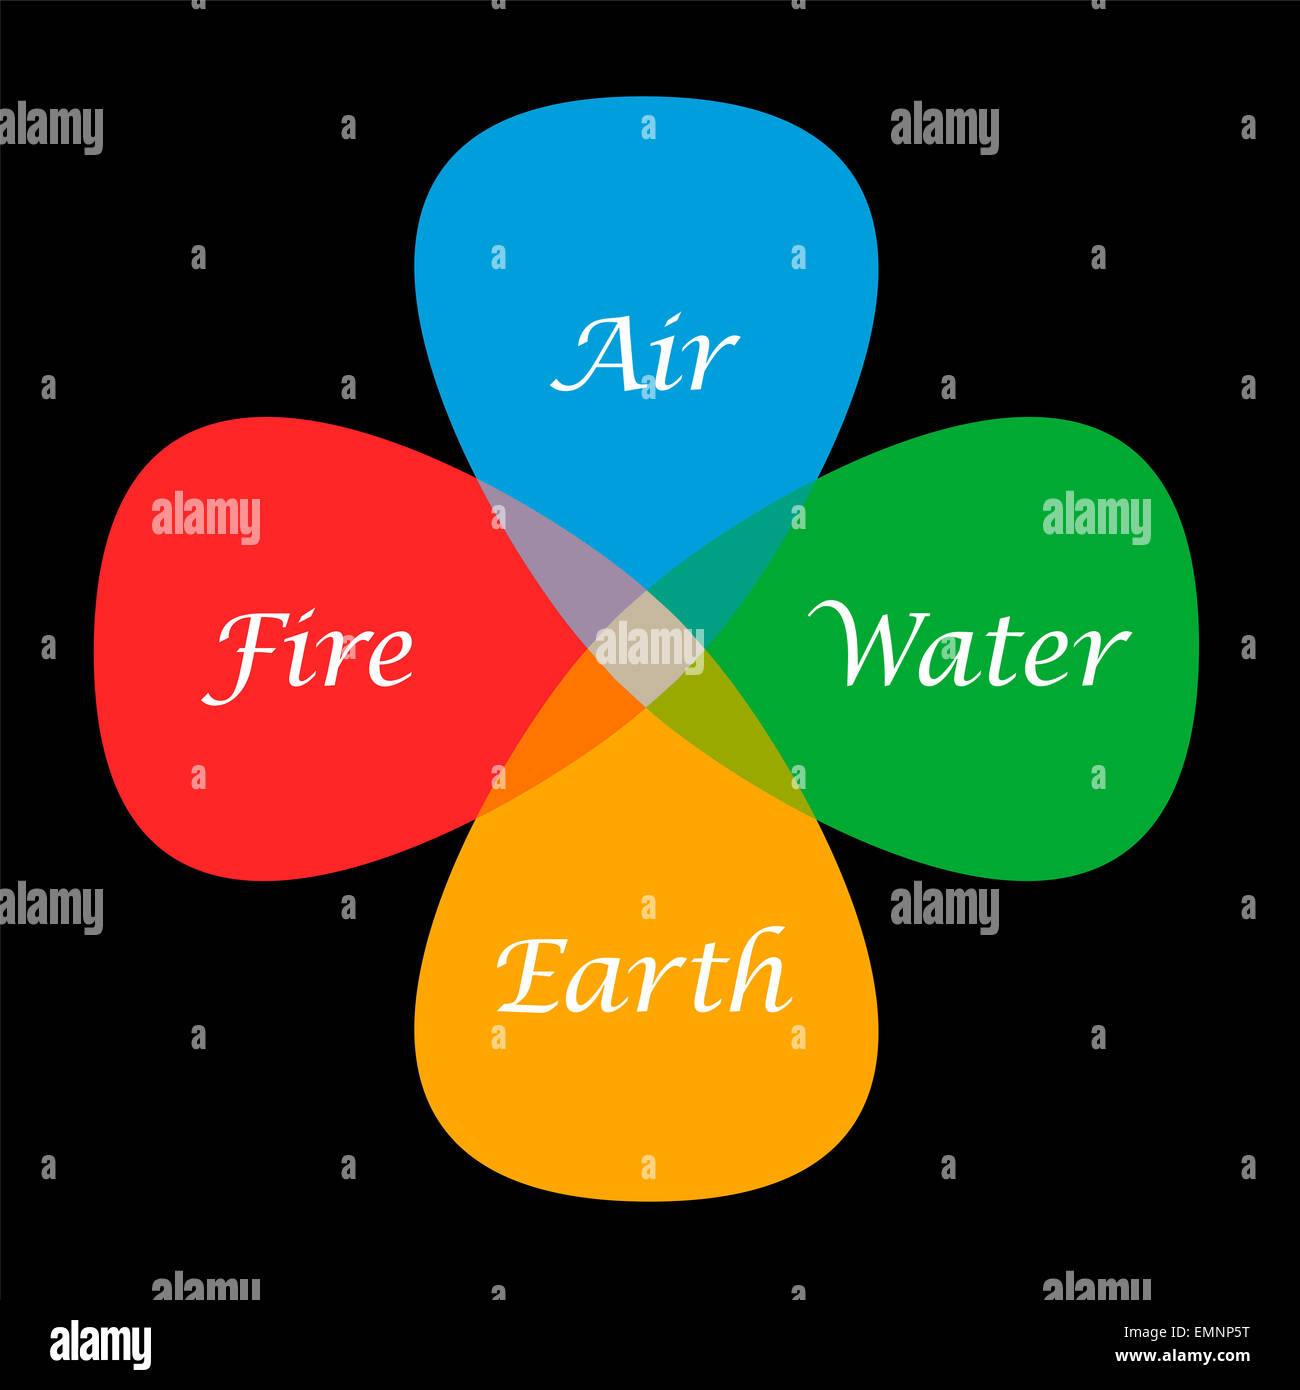 The four elements fire, air, water and earth in their corresponding colors red, blue, green and orange, depicted - Stock Image